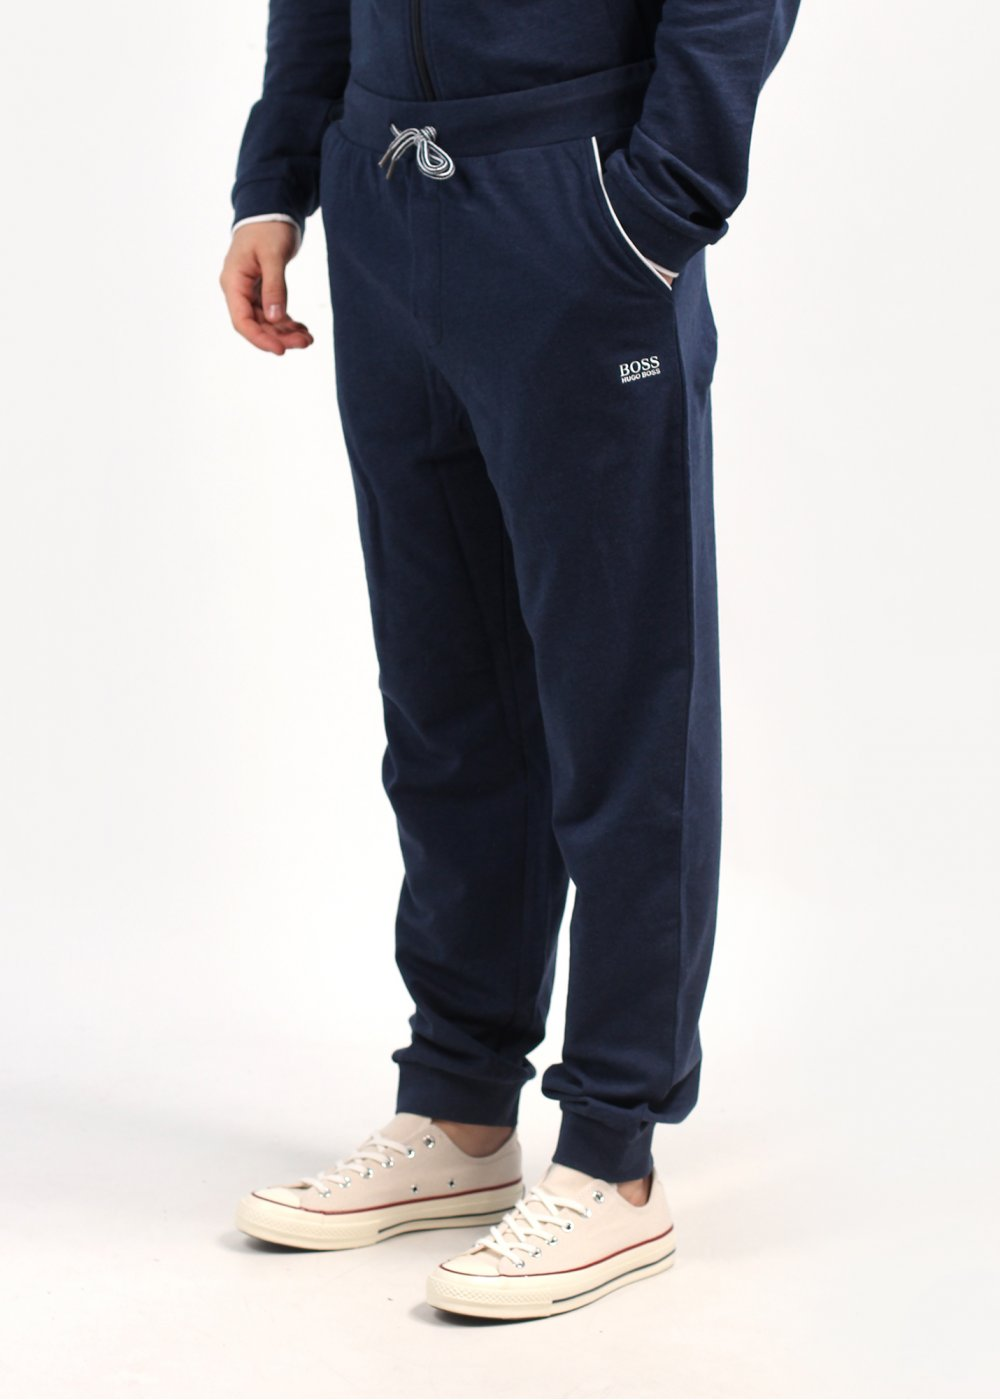 234a1d8a Hugo Boss Tracksuit Bottoms - Hugo Boss Long Pant Cuff - Navy